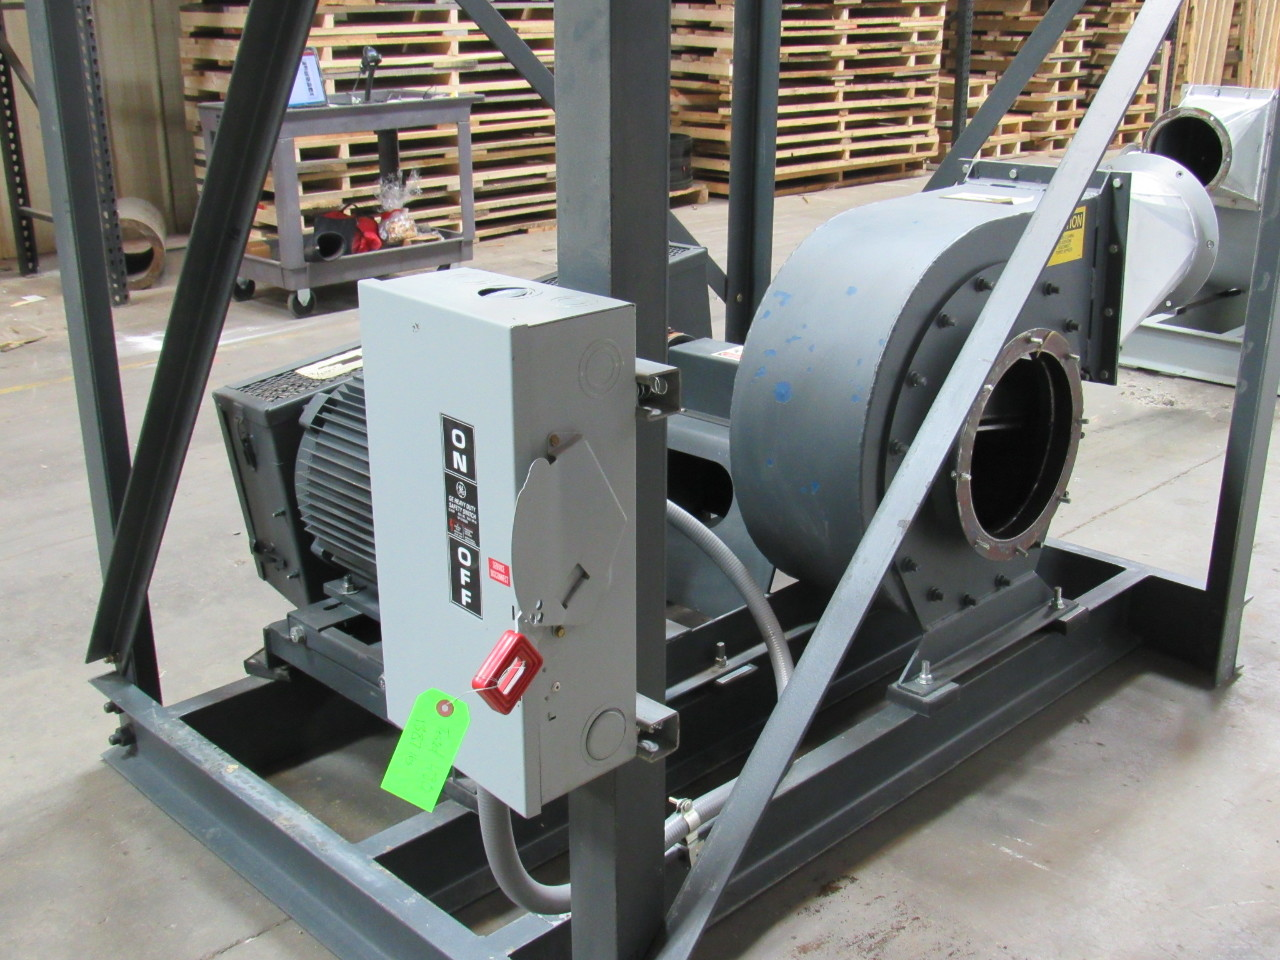 Puhl 112 01 9r 25 hp blower paper dust collector fan 50 for Dust collector motor blower